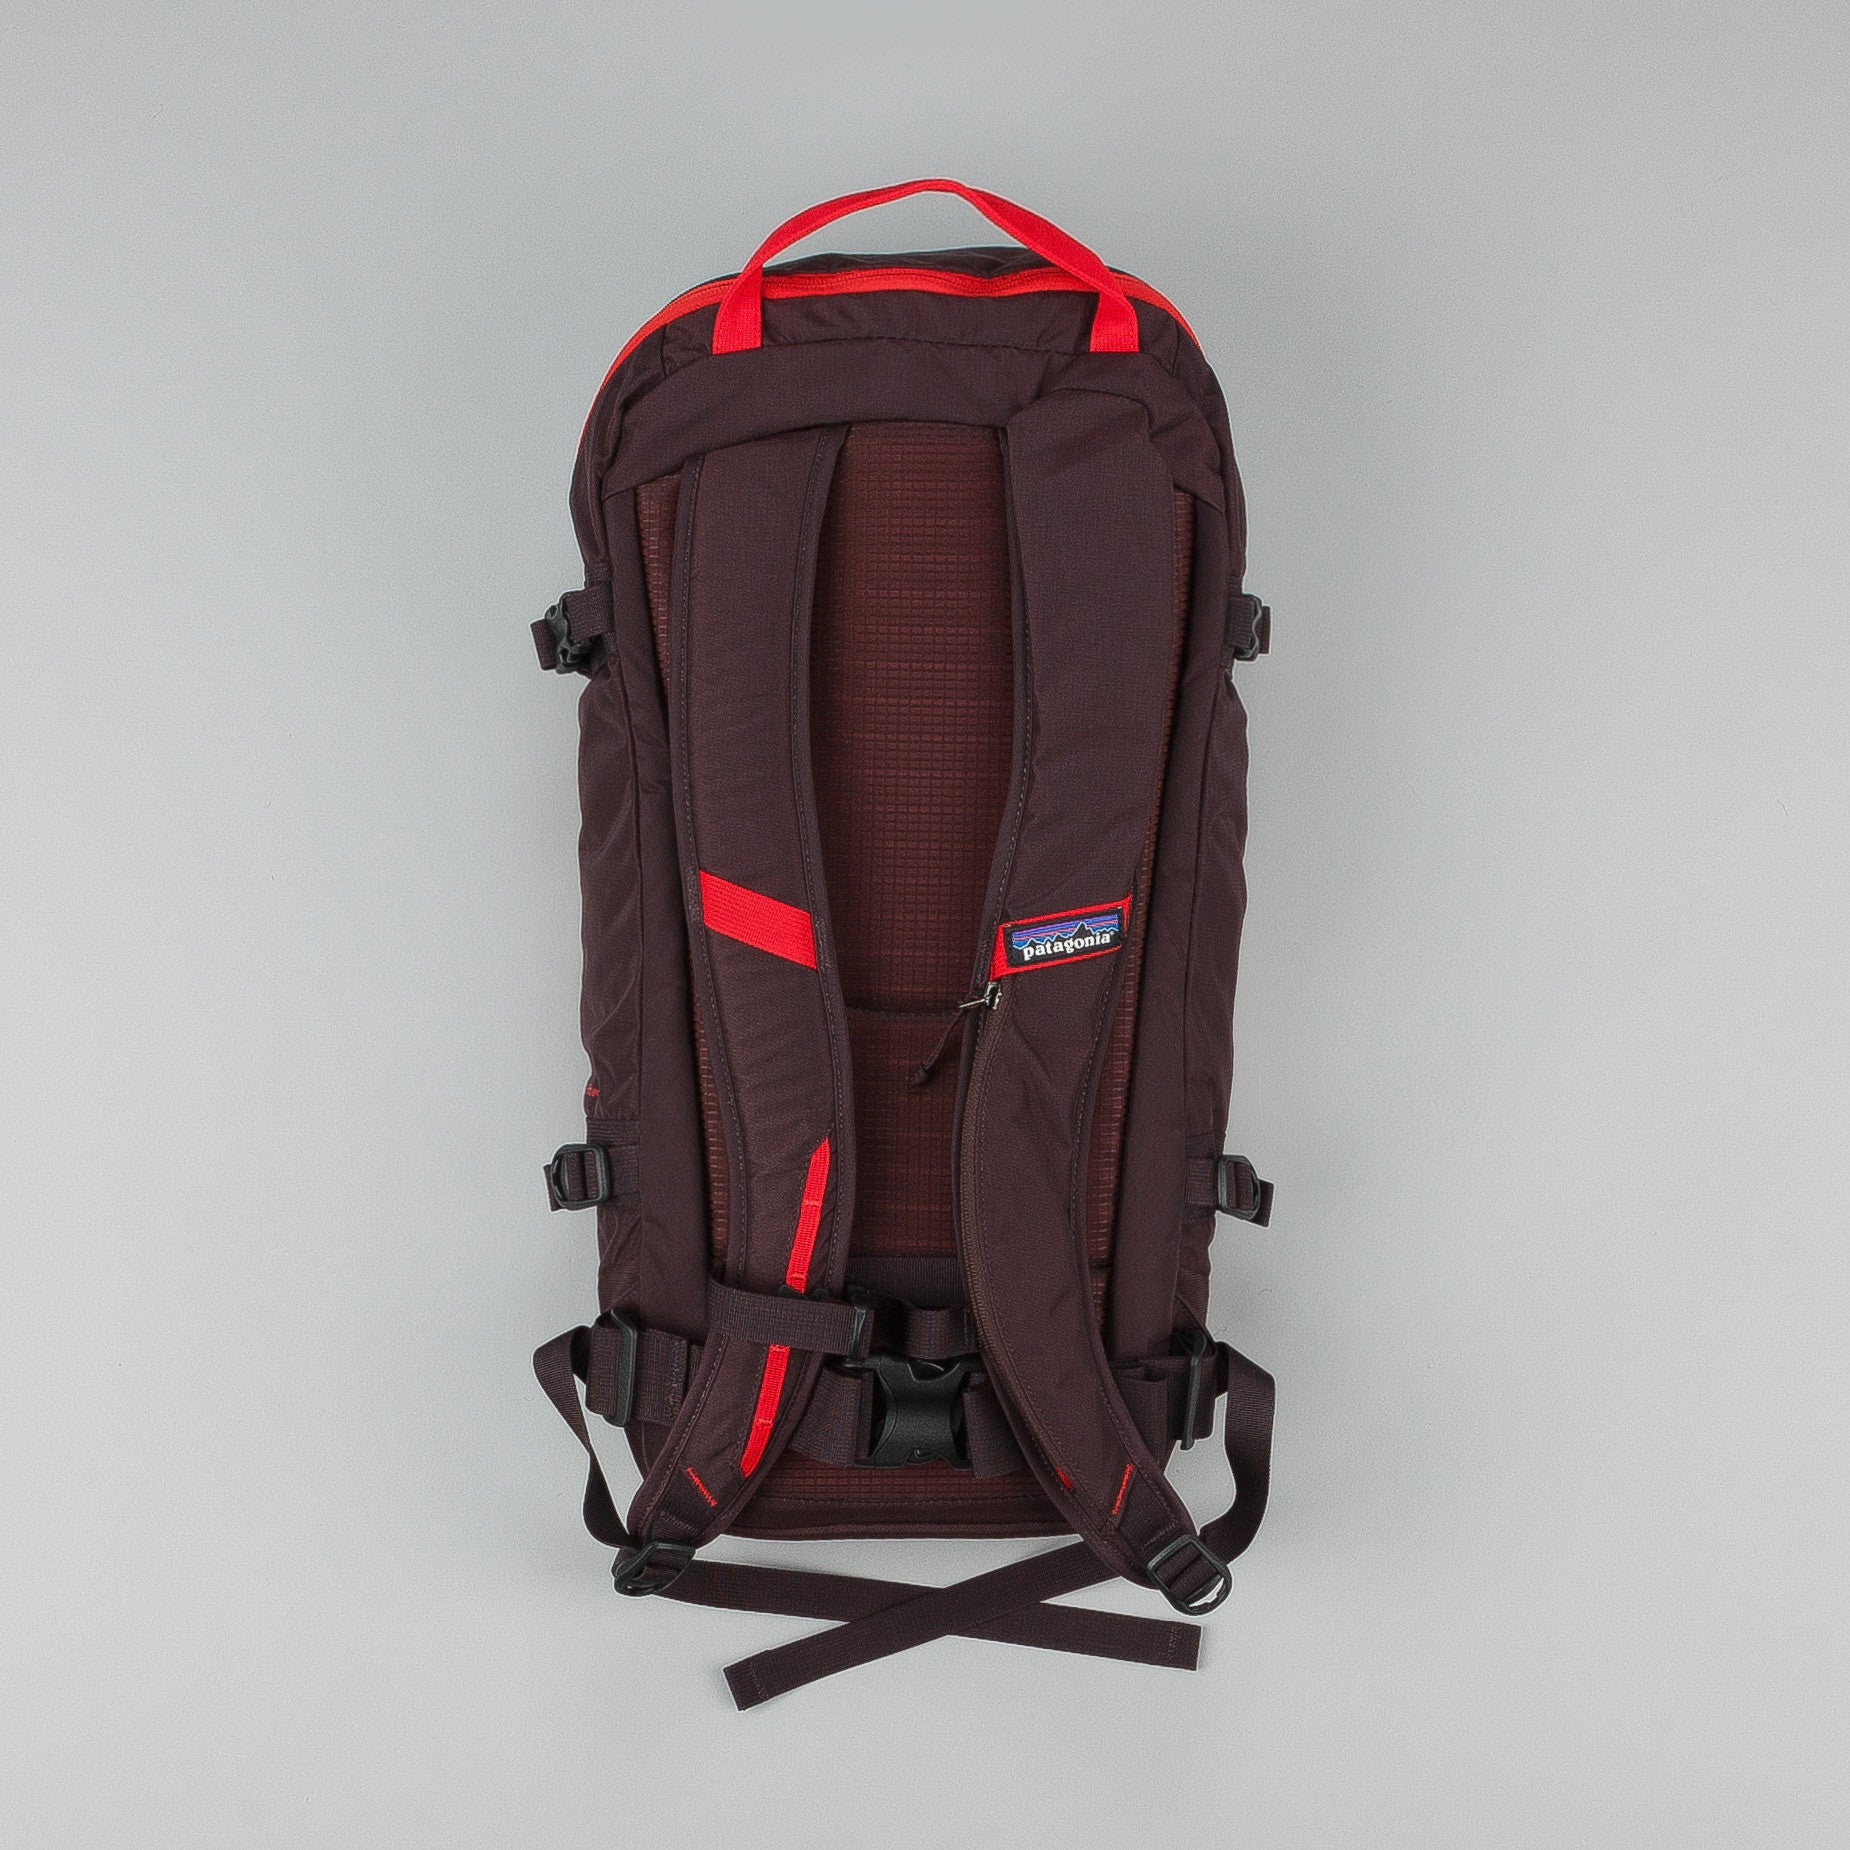 Patagonia Snow Drifter Backpack 20L - Deep Mahogany